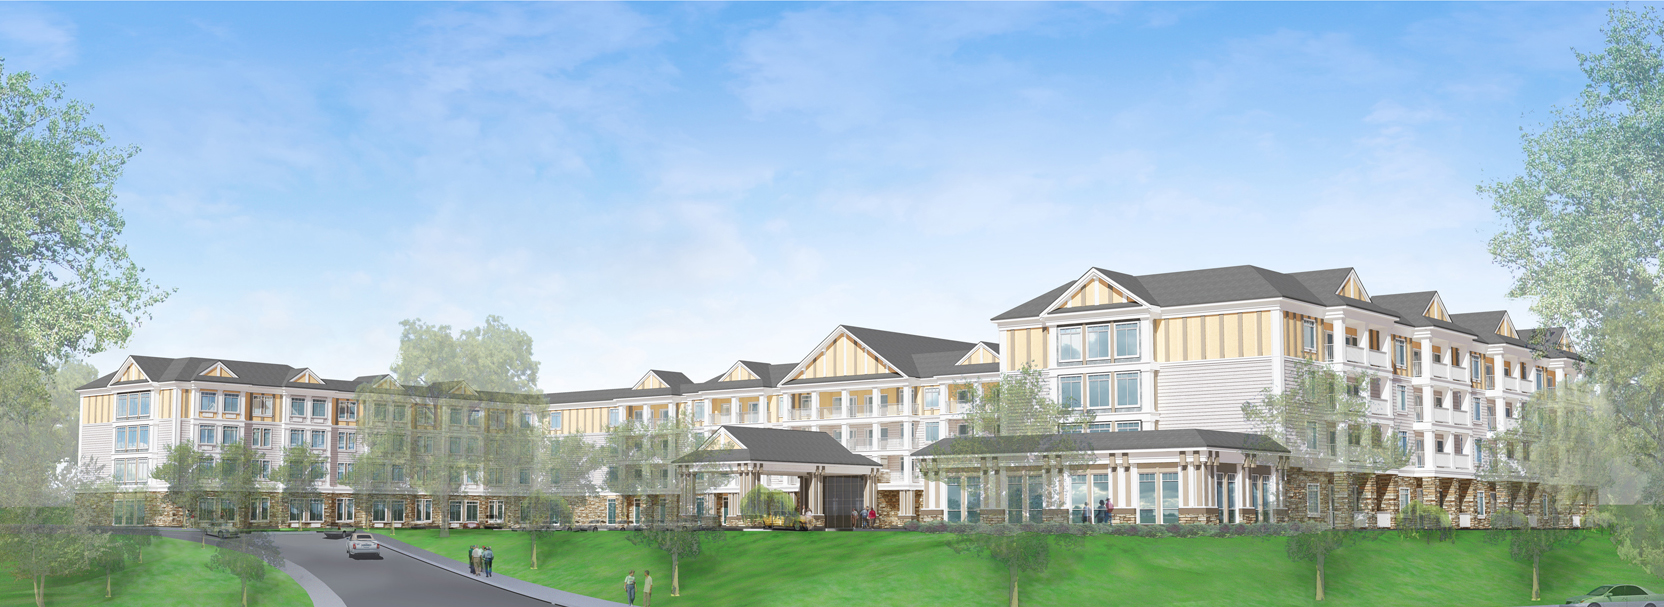 Sage hill retirement residence best retirement home in for Retirement village house plans